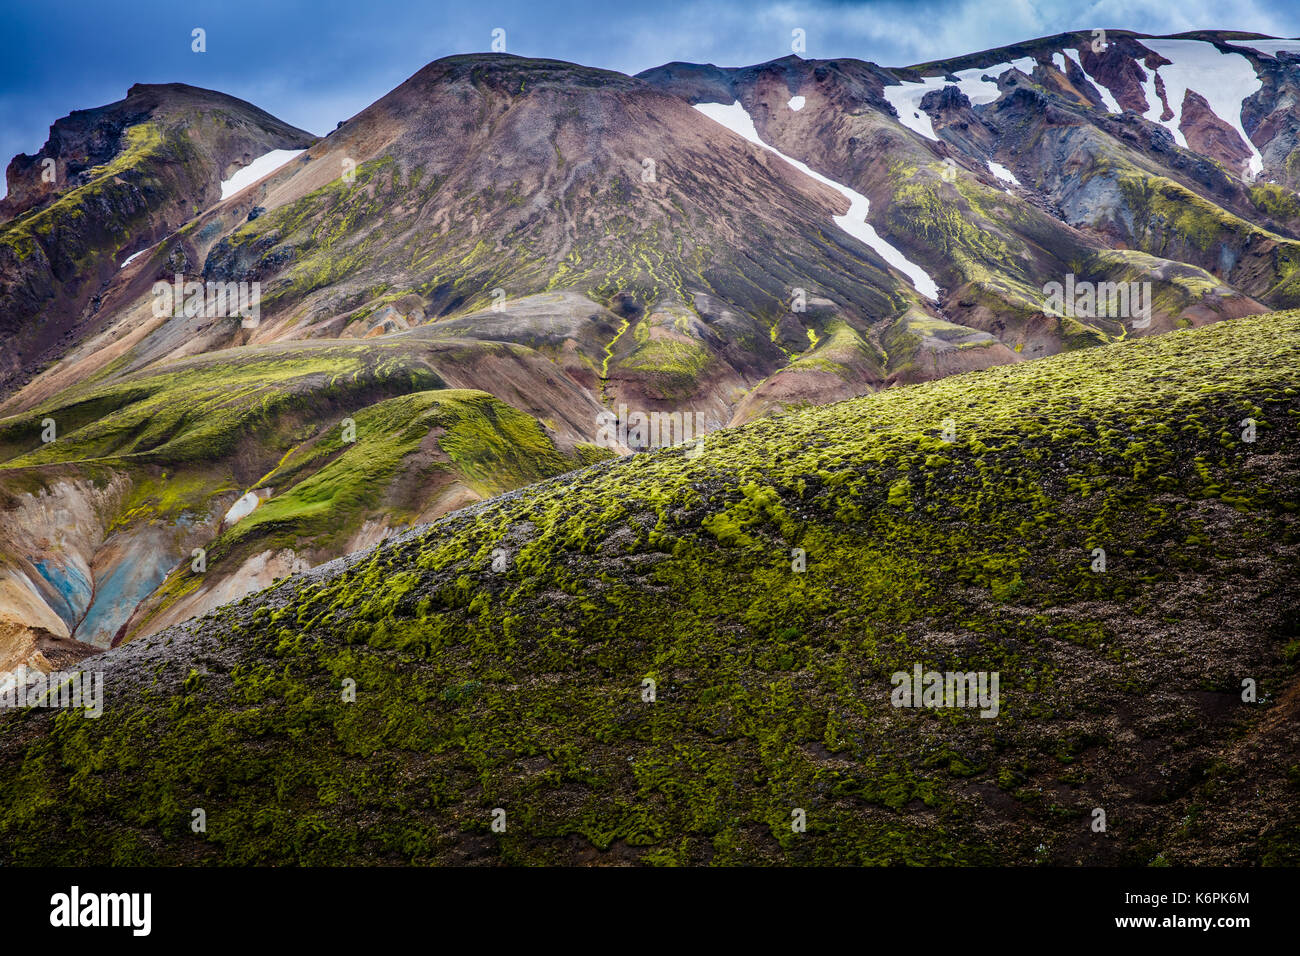 Landmannalaugar is a place in the Fjallabak Nature Reserve in the Highlands of Iceland. It is at the edge of Laugahraun lava field, which was formed i - Stock Image